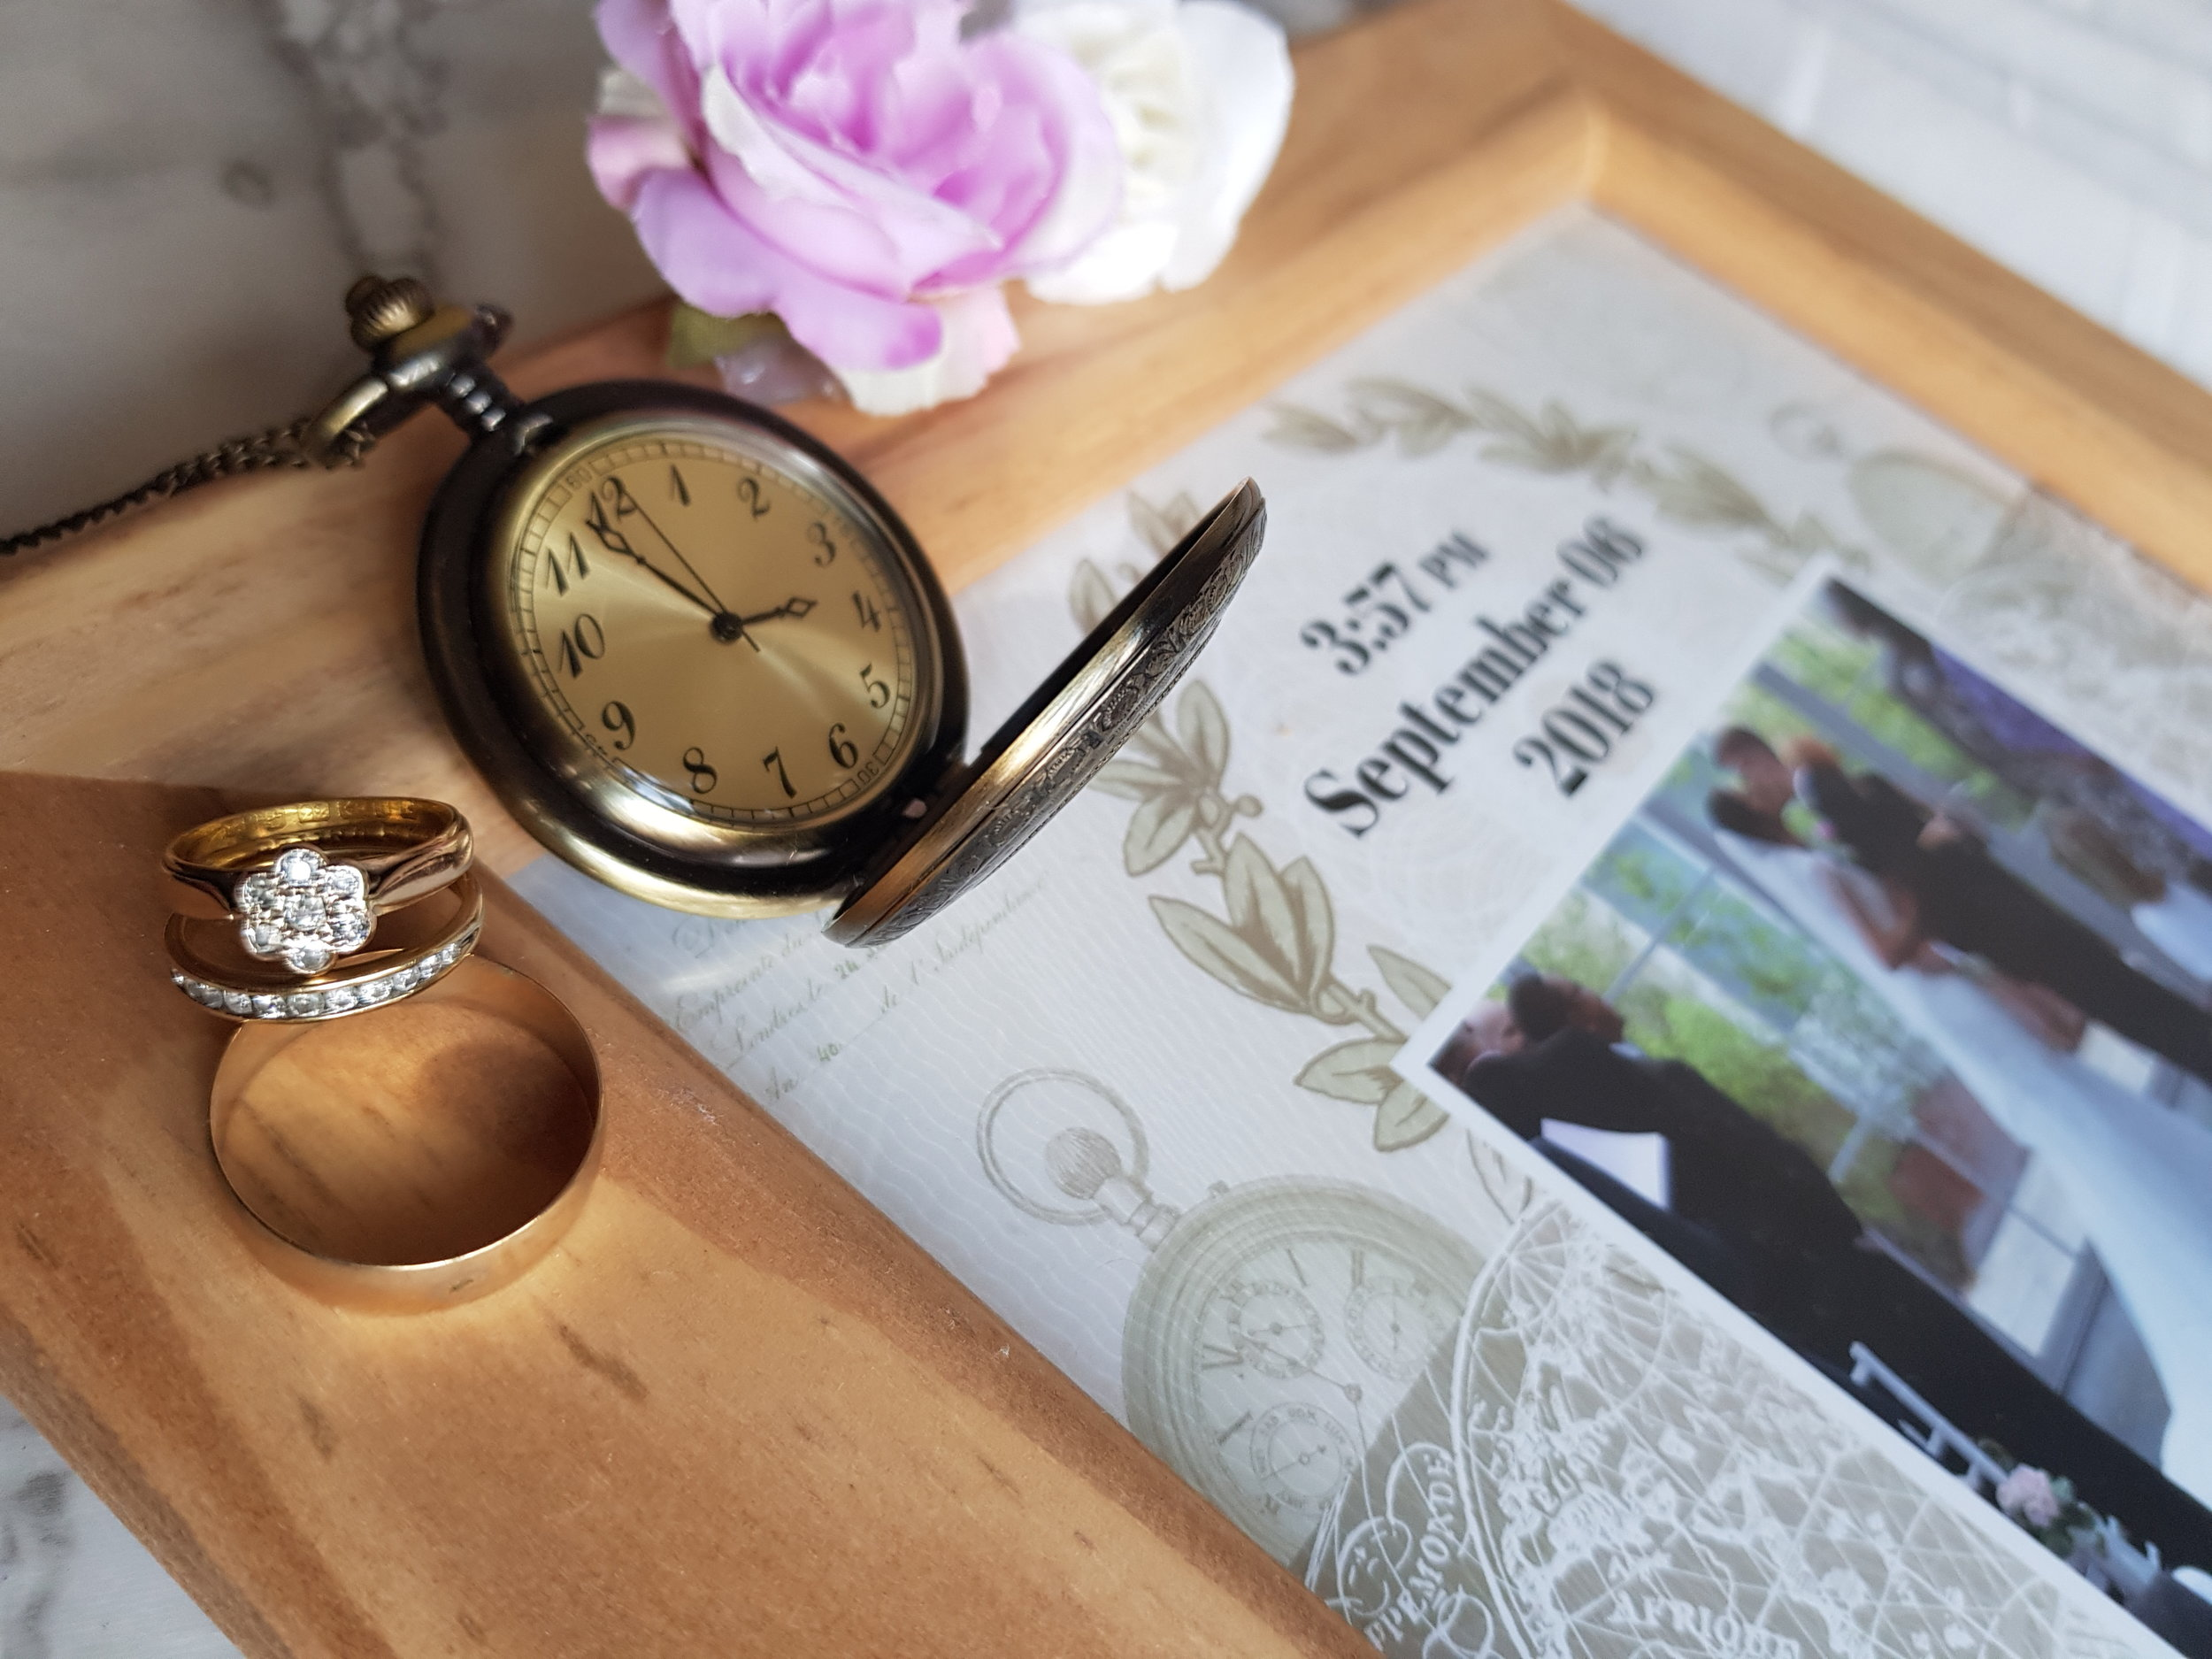 Own a moment frame and pocket watch